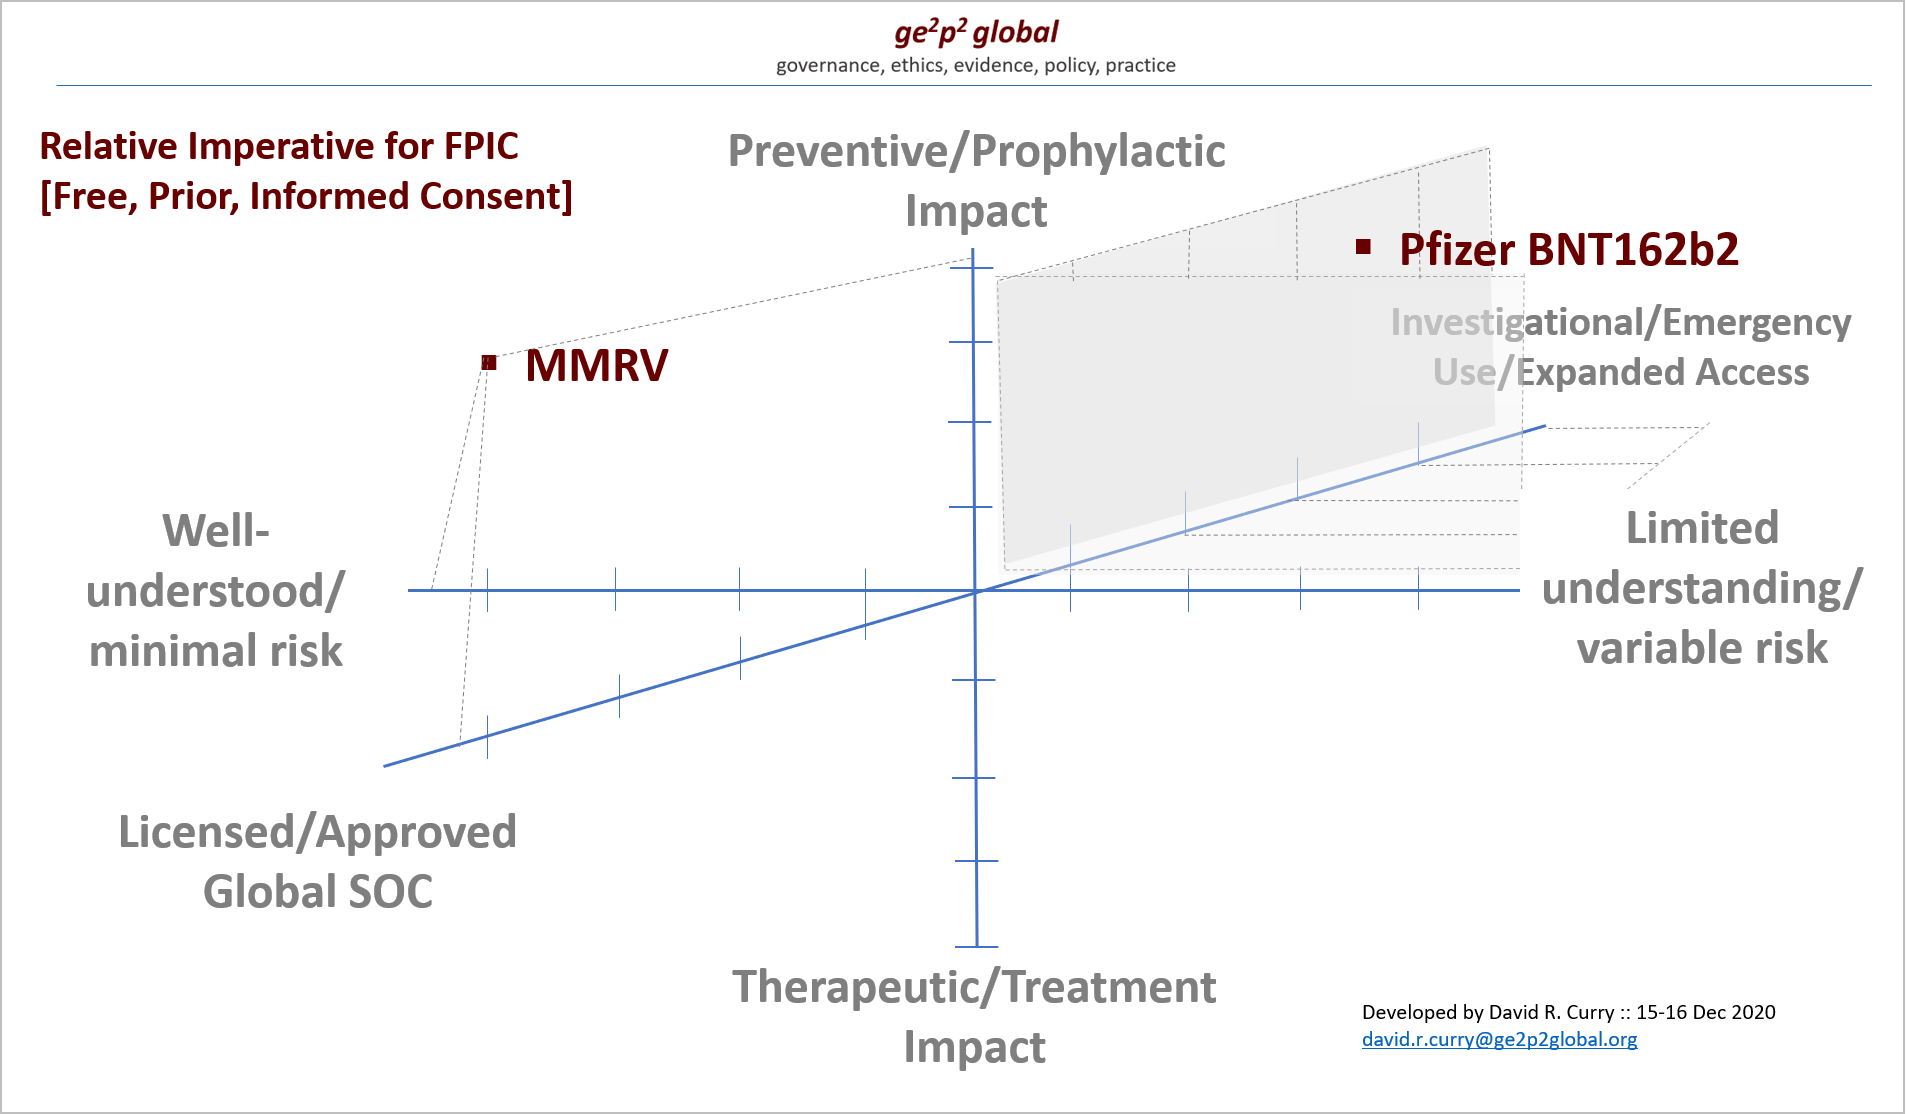 GE2P2 Global Fdn_COVID Vaccines - Imperative for Consent_16 Dec 2020